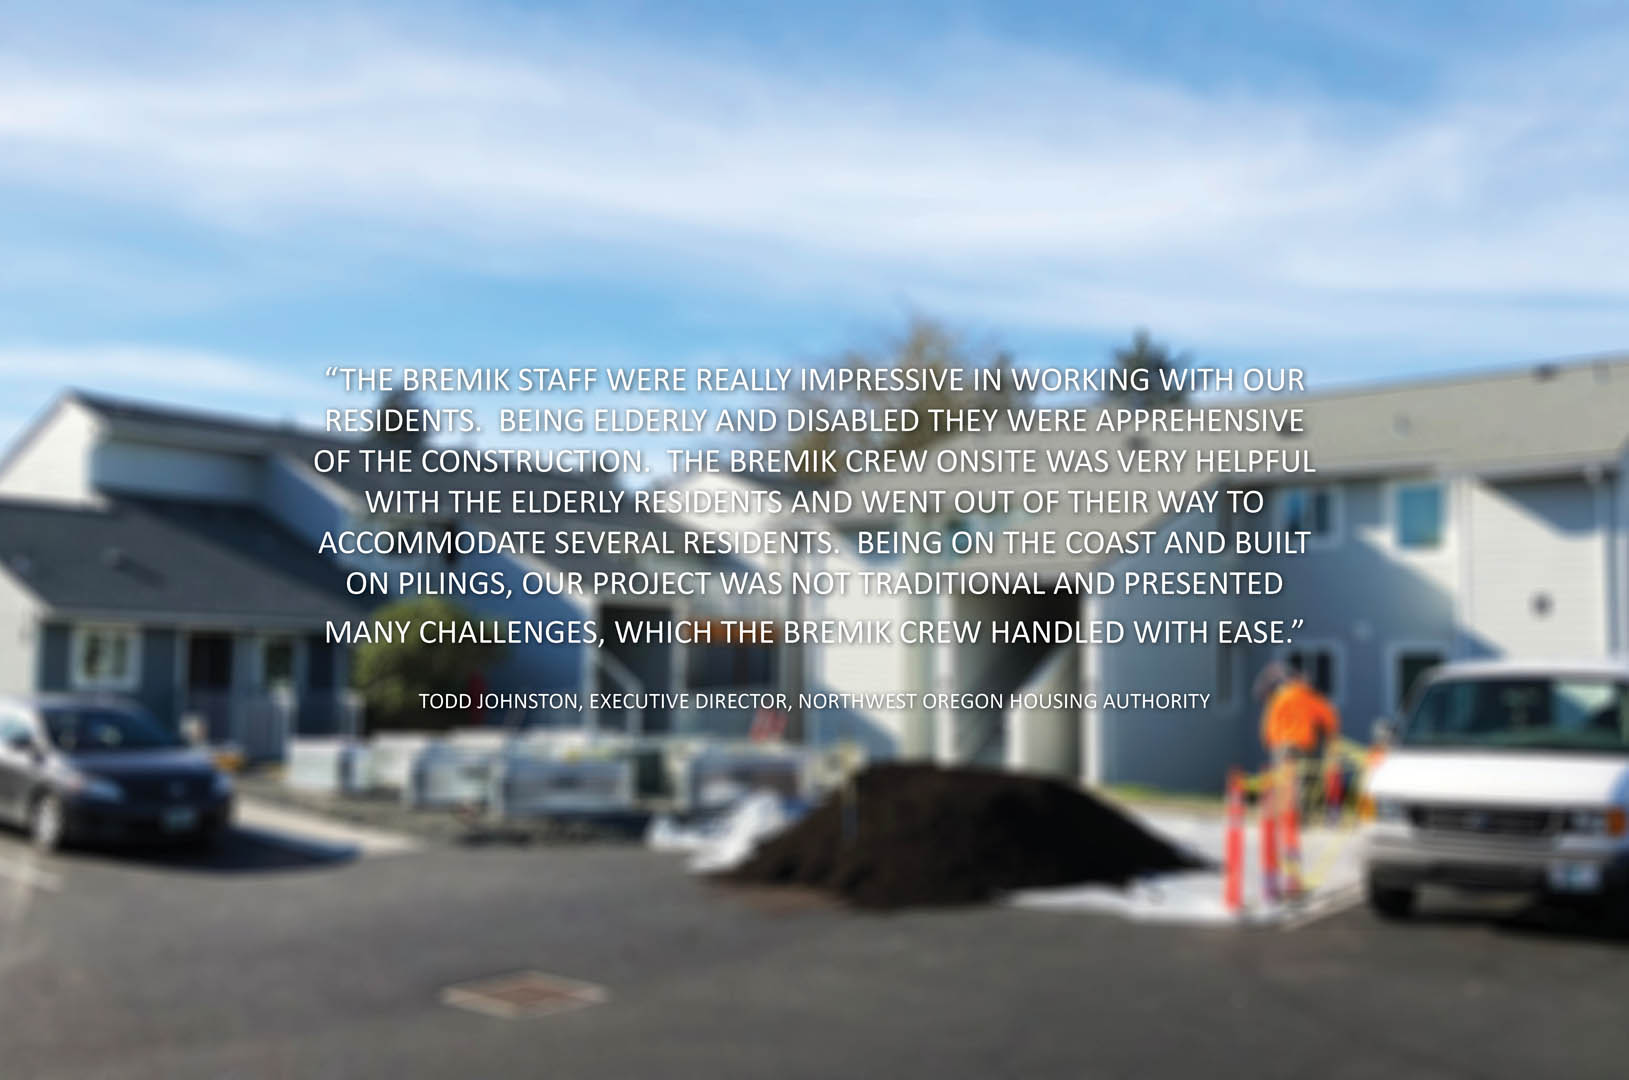 Blurred-Quote-1